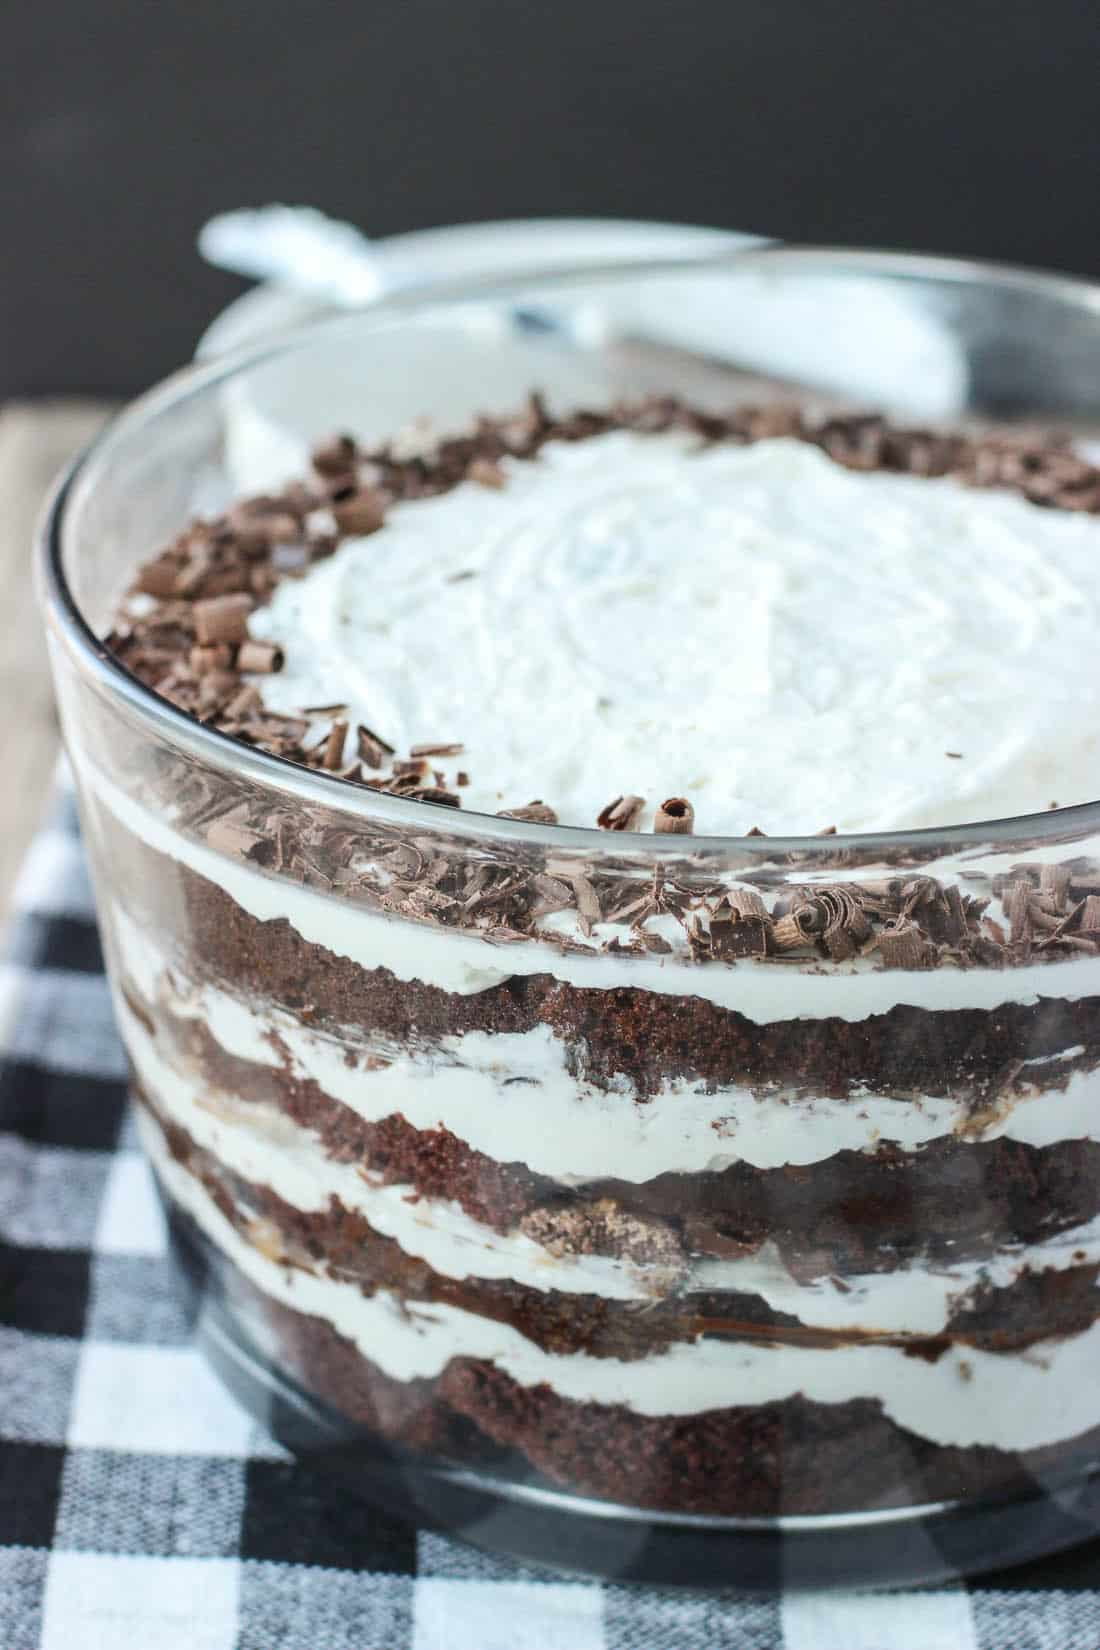 This chocolate toffee fudge trifle is a crowd-pleasing dessert at its finest! Layers of chocolate cake are topped with homemade whipped cream, hot fudge topping, and chocolate toffee pieces, and decorated with easy chocolate curls and festive holiday sprinkles. The whipped cream is stabilized so leftover portions stay well in the fridge for days!